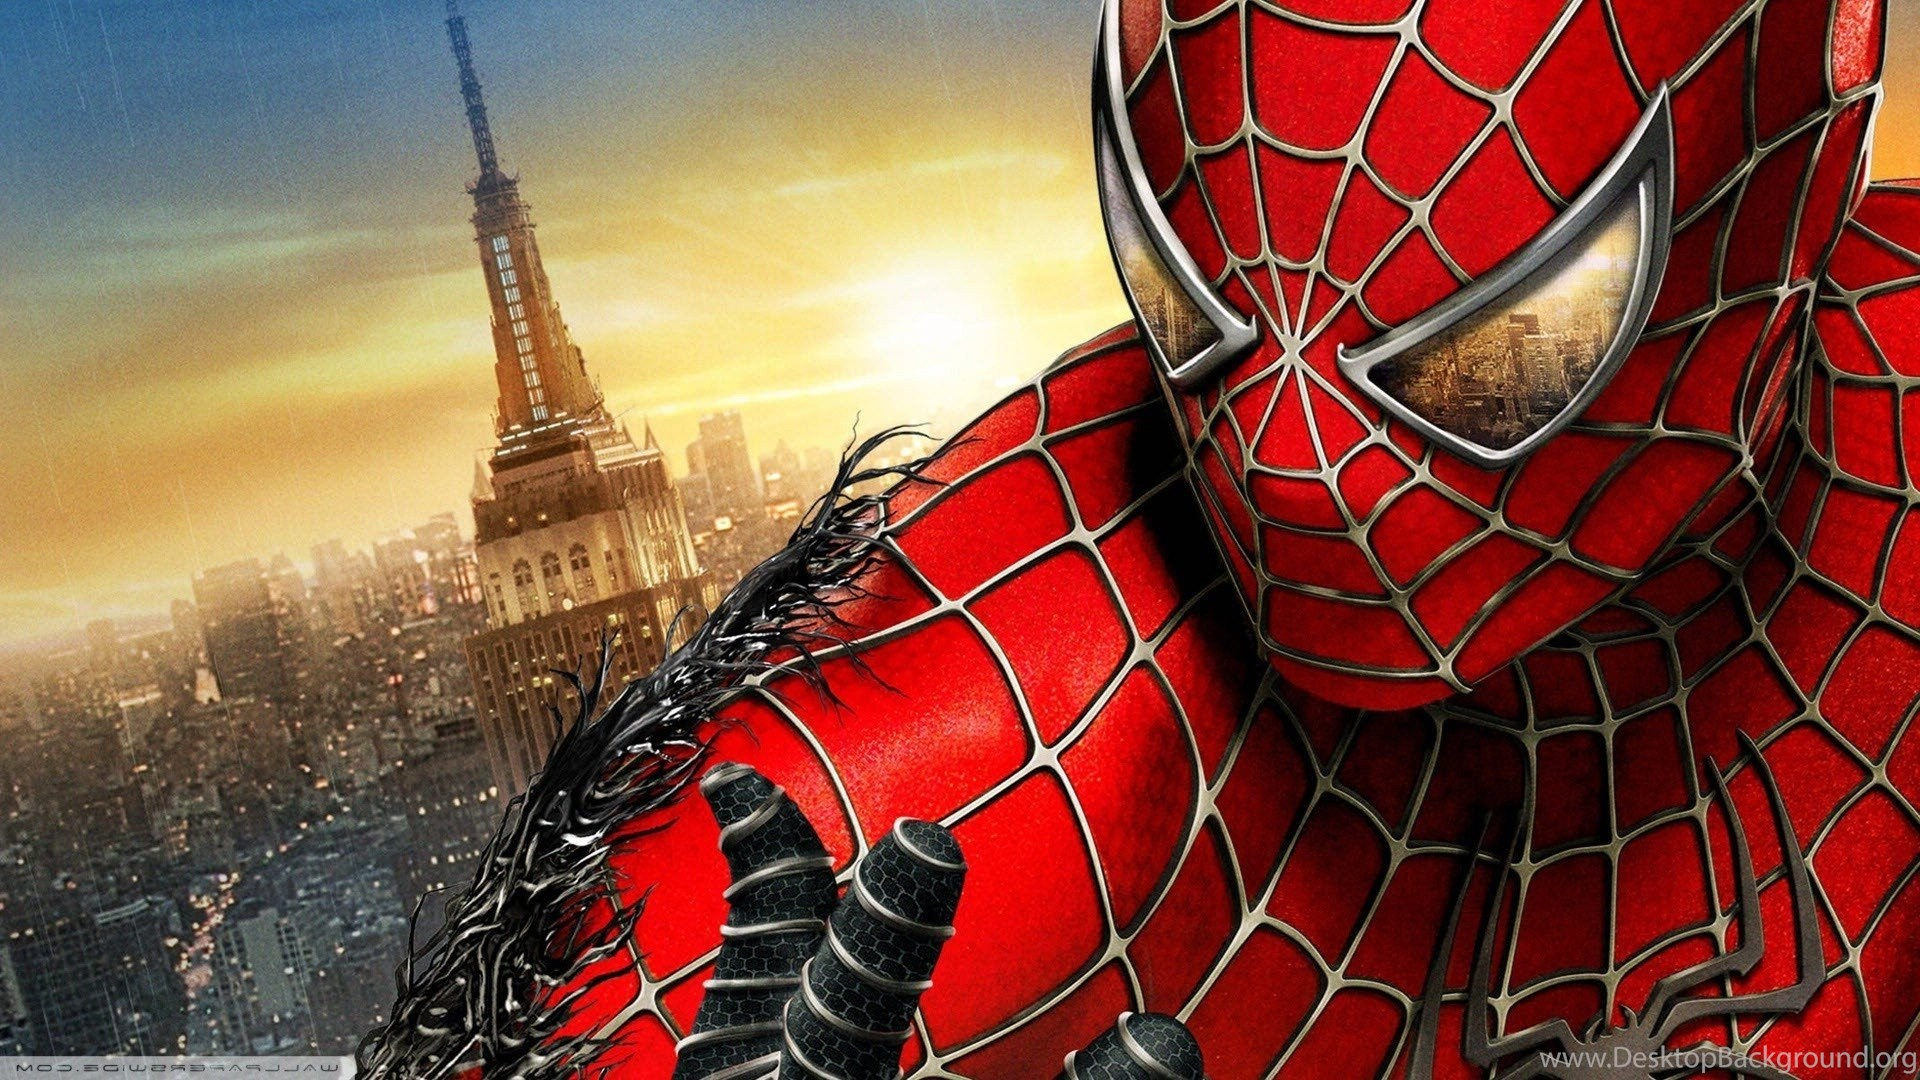 Spider Man Movies Spider Man 3 Wallpapers Hd Desktop And